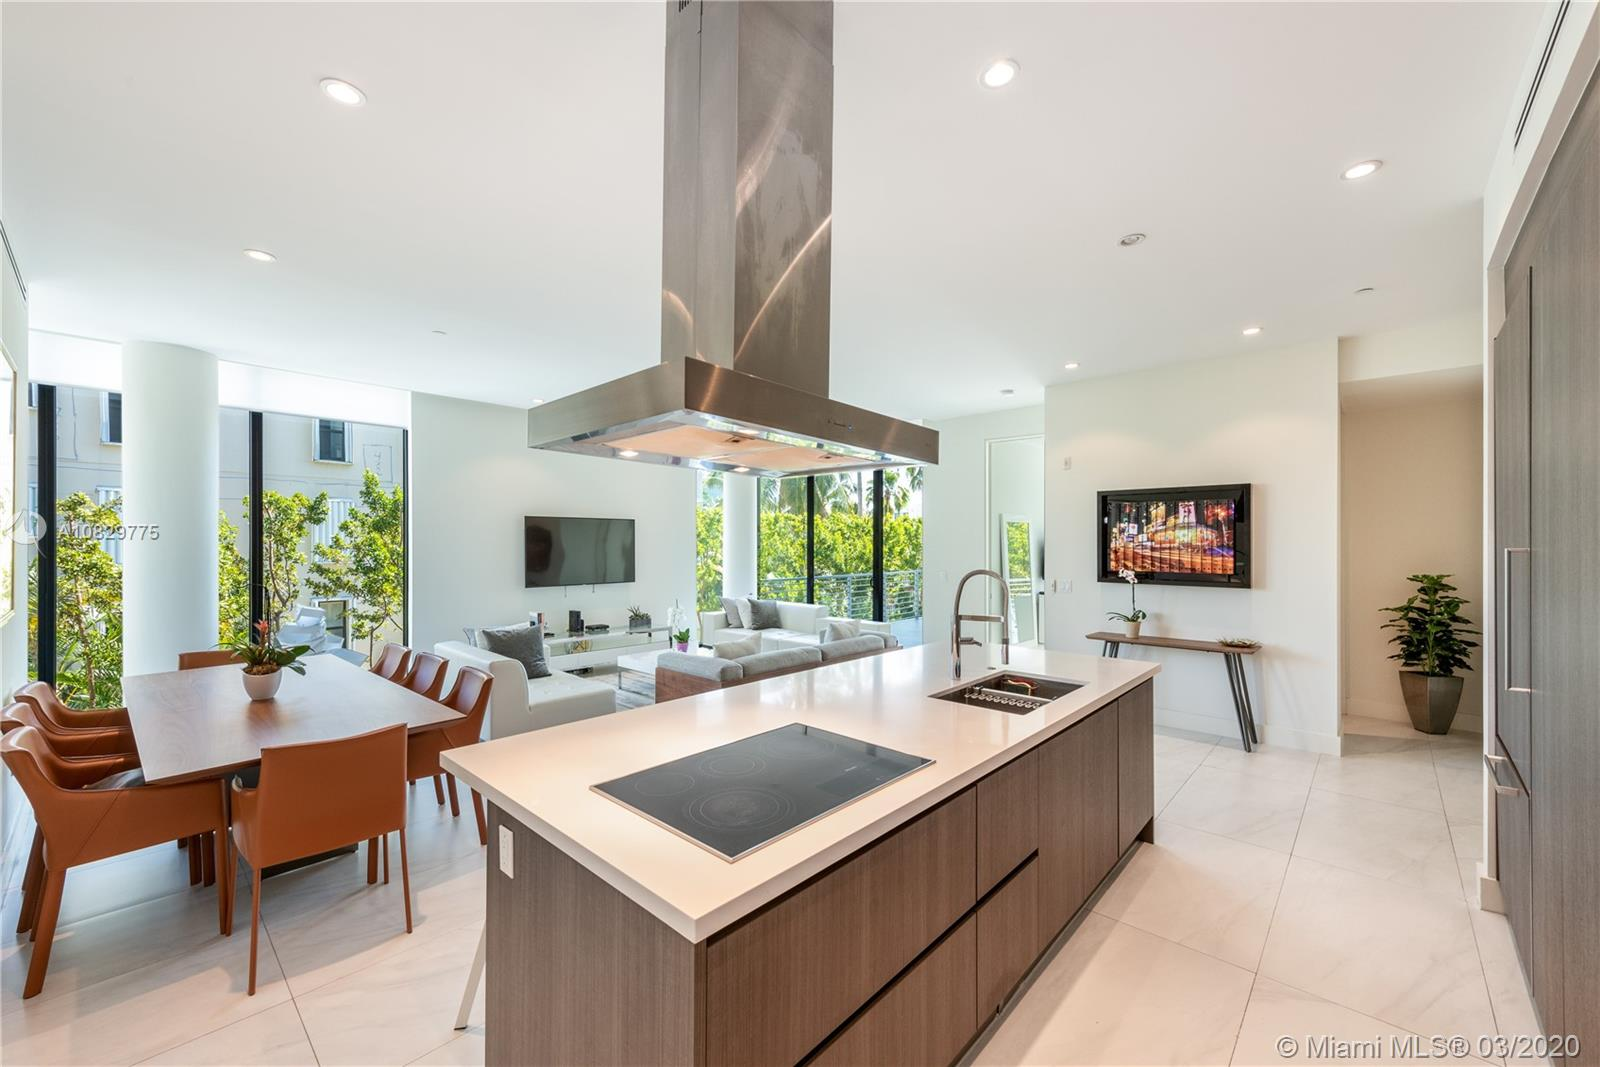 This spacious corner unit spans 2,201 sf comprised of 3 bedrooms, 3/1 baths with an open floor plan that offers plenty of natural light from 11 ft floor-to-ceiling windows and doors throughout. Kitchen includes Miele appliances and white quartz countertops. Large open balcony with wet bar for al fresco dining. Clean Contemporary architecture can be found throughout this completely gated and walled urban boutique building located in the heart of Key Biscayne. Amenities include gym, roof top lap pool, barbecue area and sundeck. Laundry room in unit. 2 parking spaces and storage. A perfect winter retreat destination.